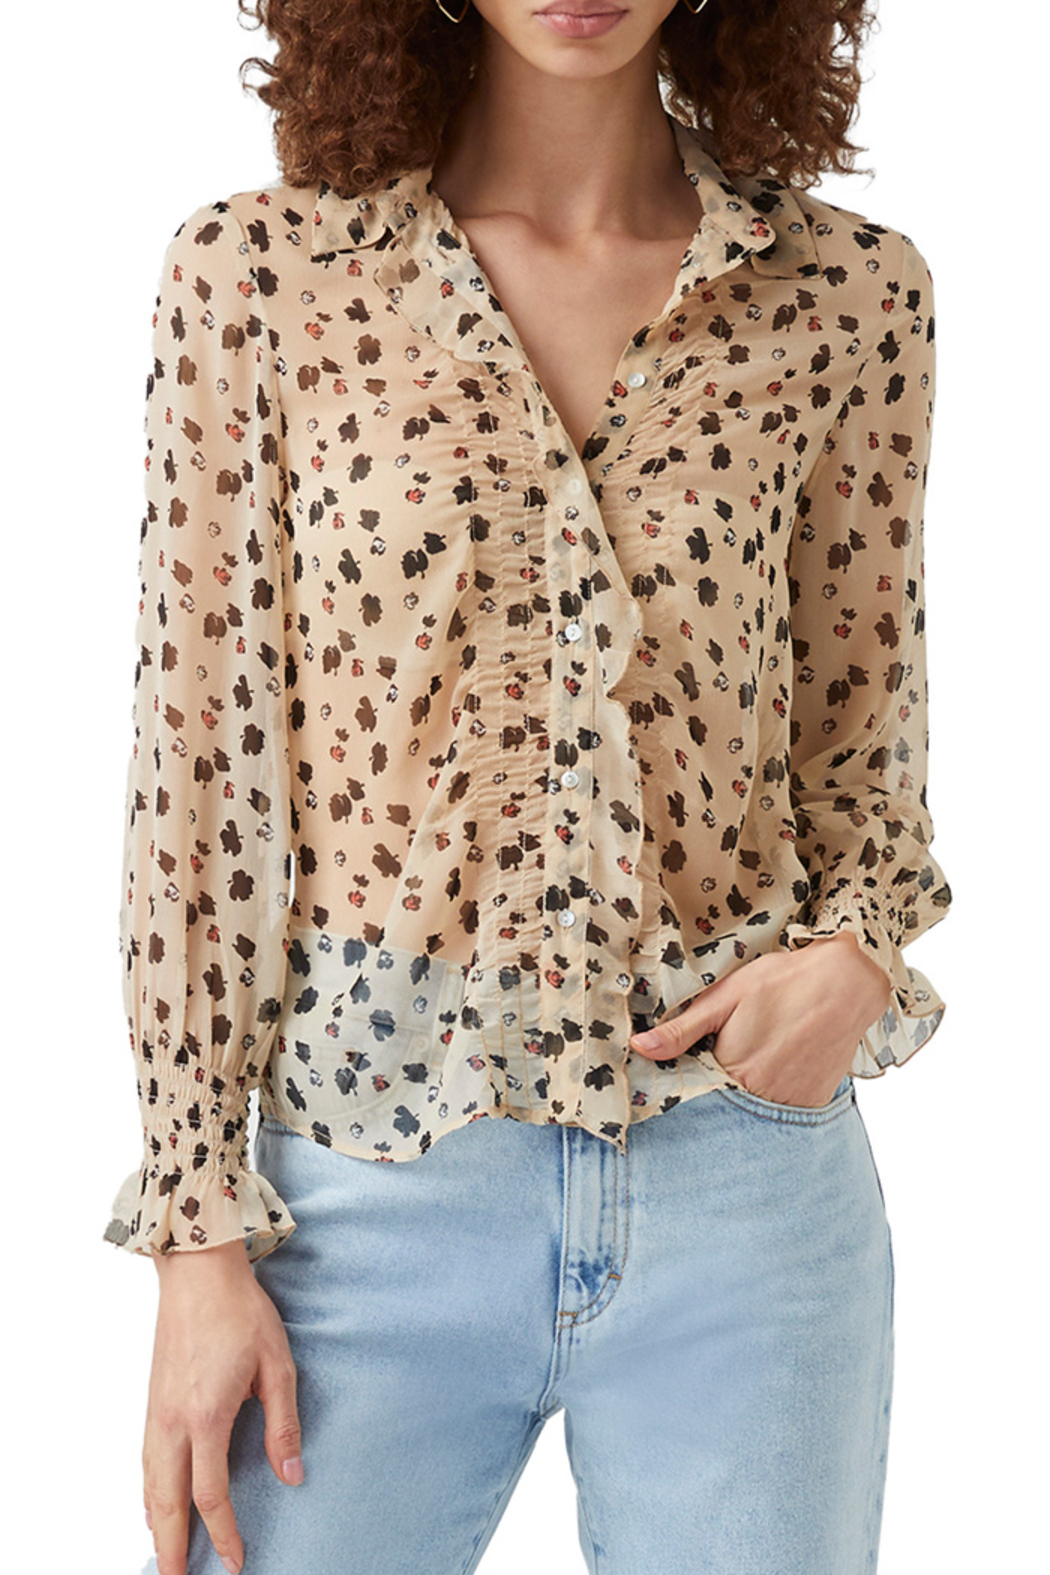 French Connection Dolores Crinkle Sheer Shirt - Back Cropped Image